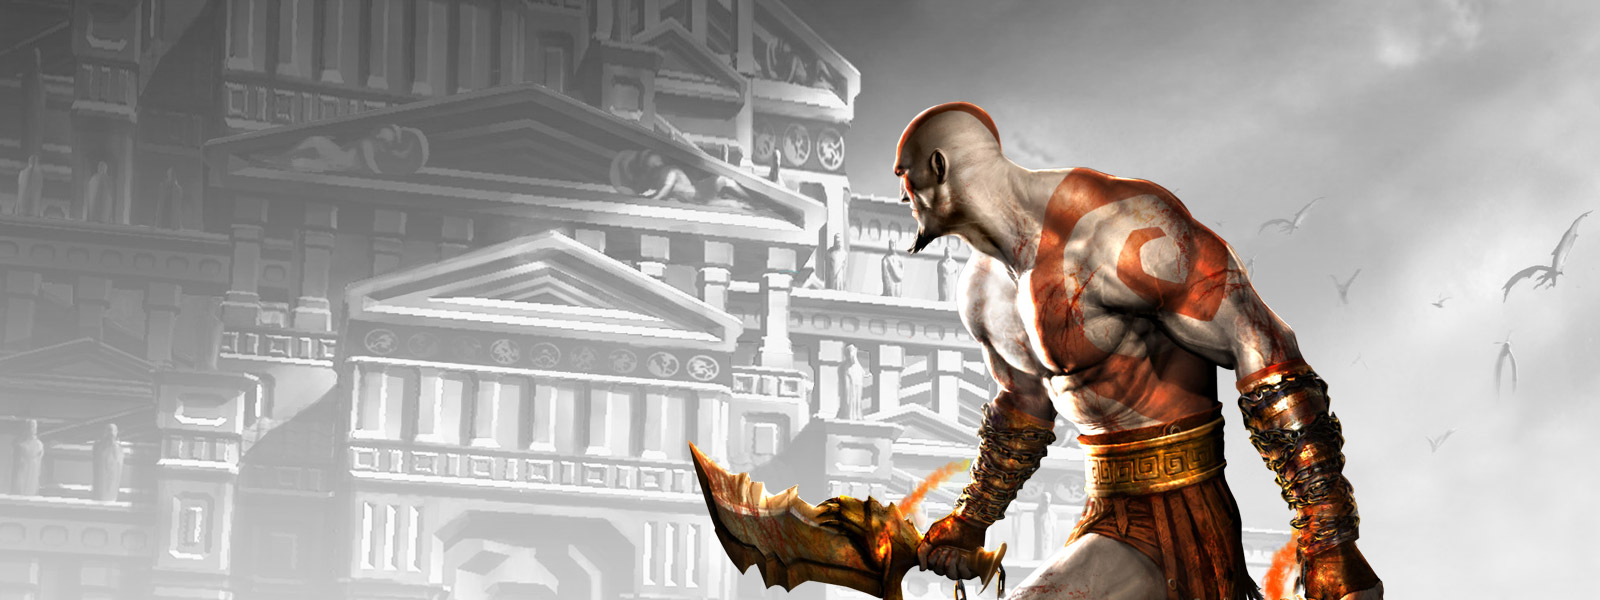 Fall Out Boy Pc Wallpaper God Of War Collection Vita Review Ign